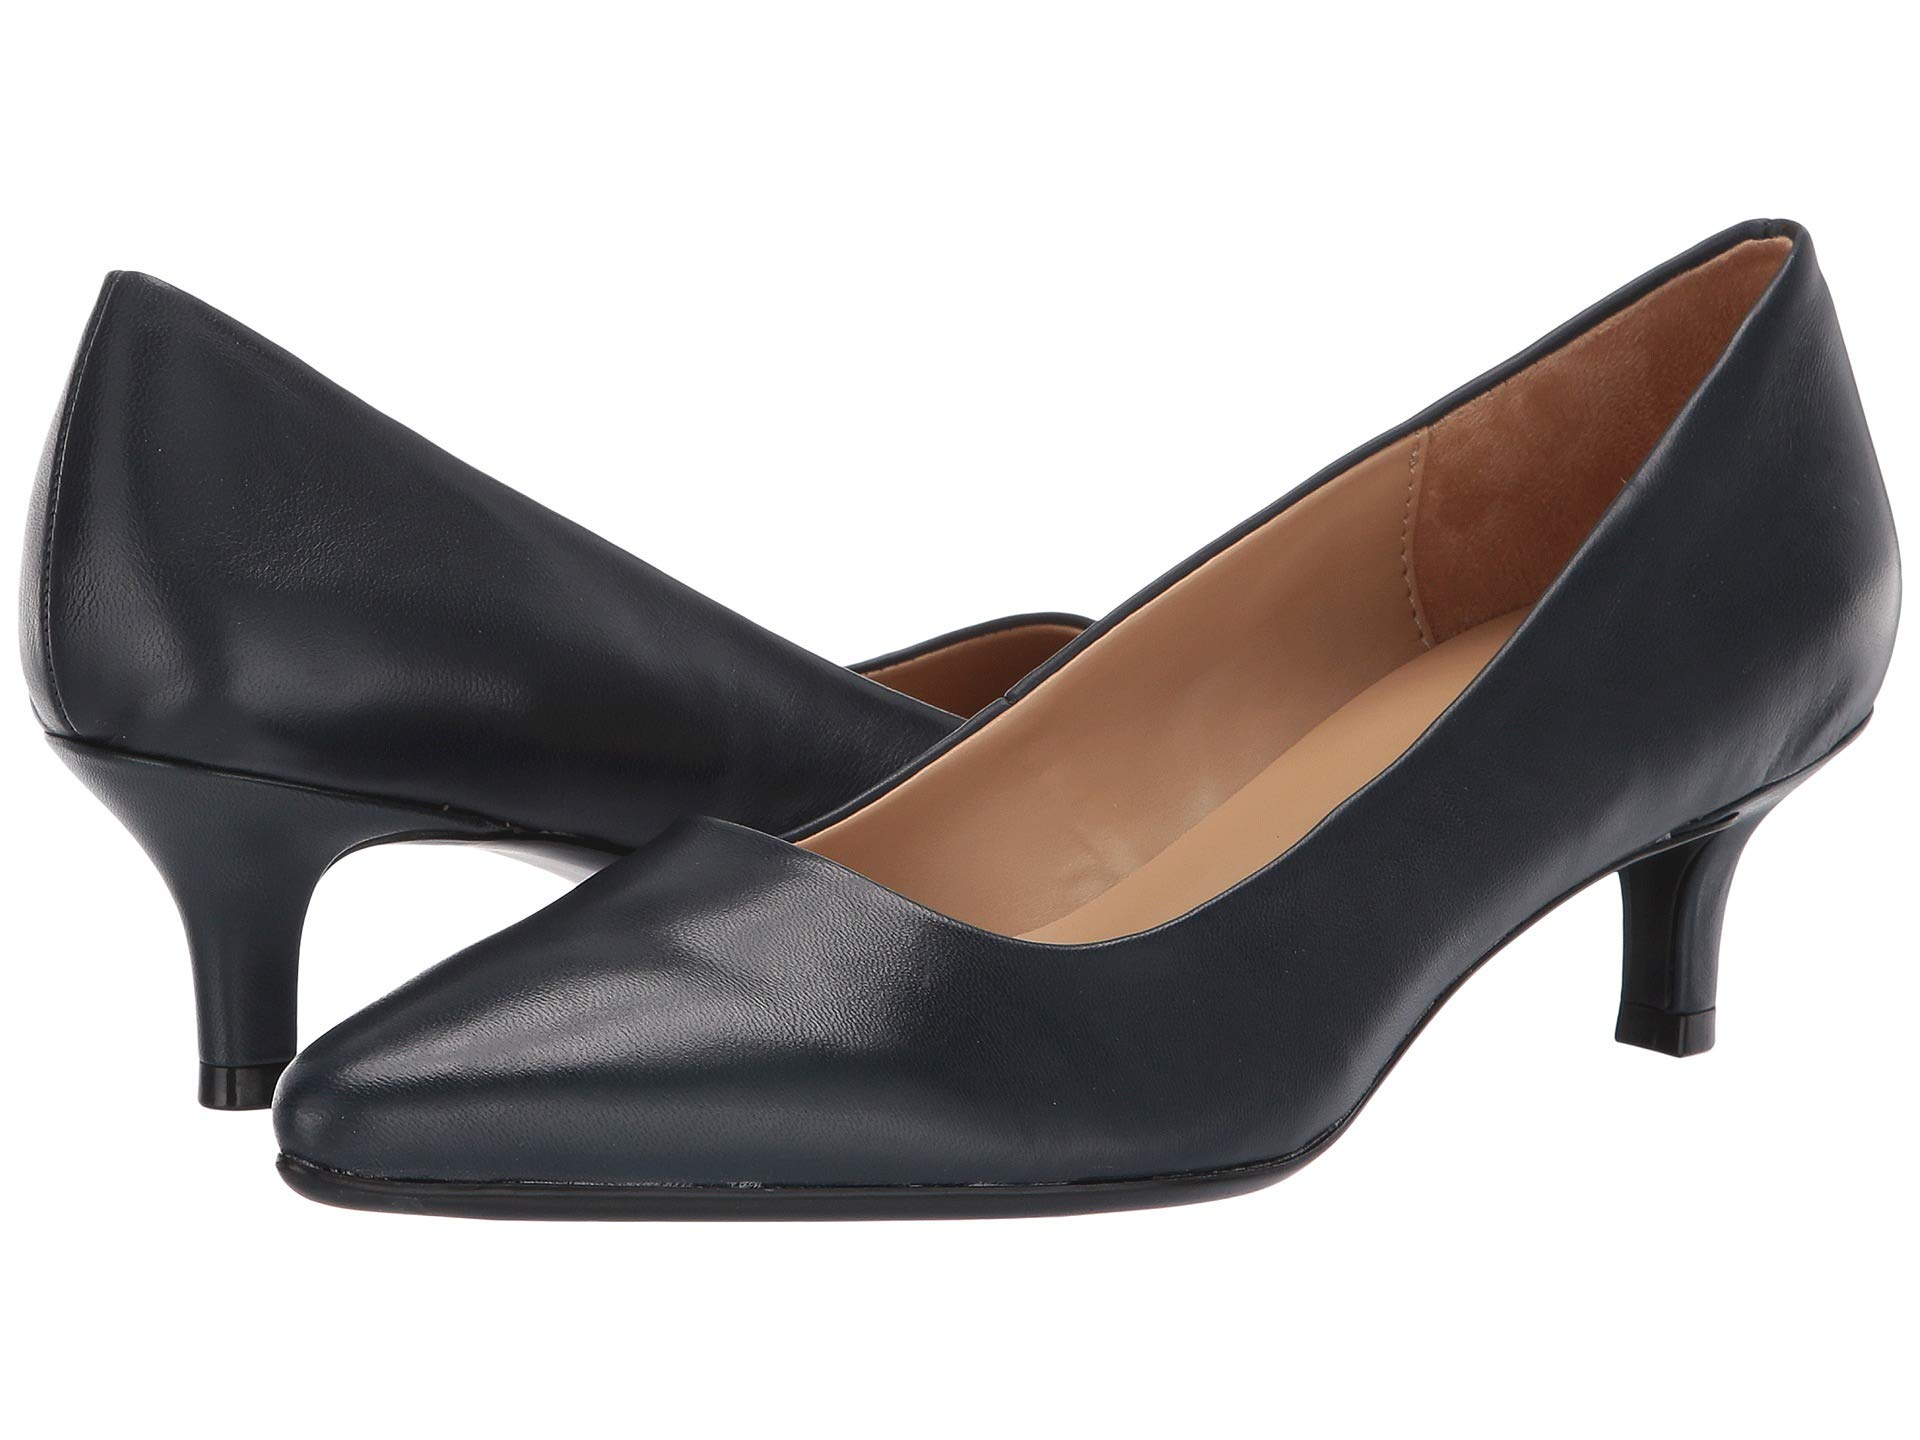 Naturalizer Womens Gia Leather Pointed Toe Classic Pumps